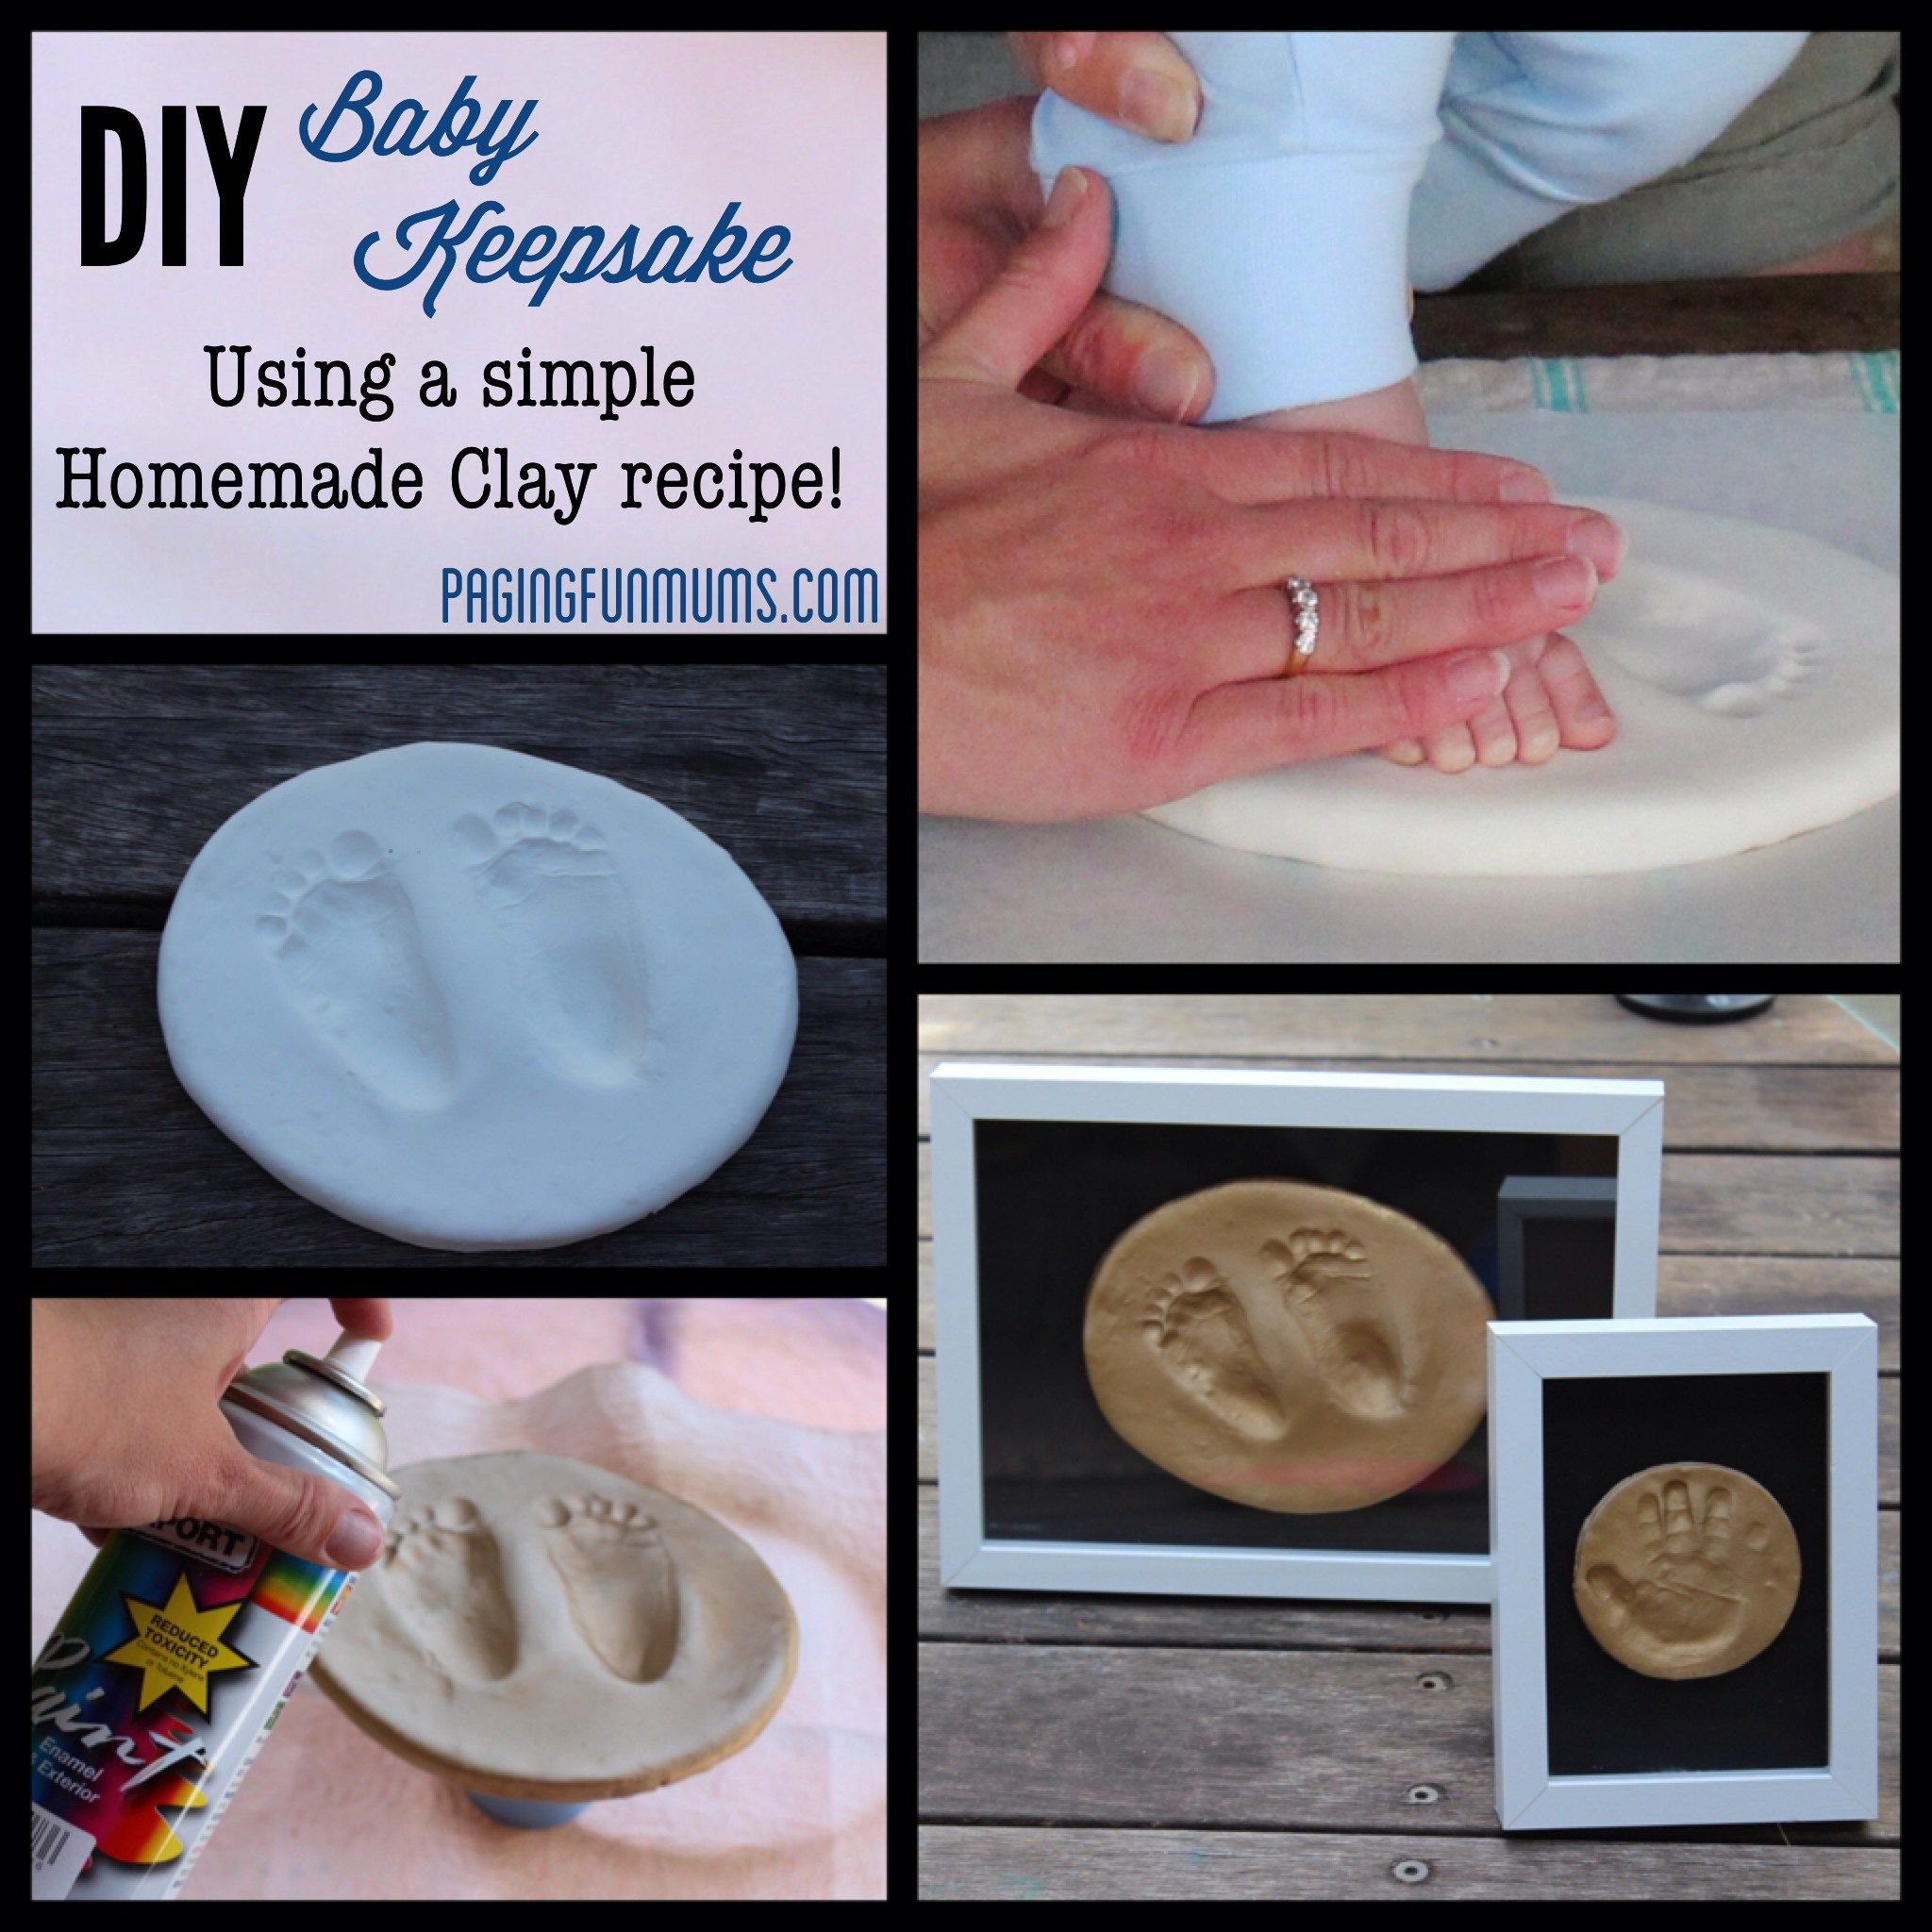 Diy Mothers Day Gifts From Baby Diy Baby Keepsake Using Homemade Clay Homemade Clay